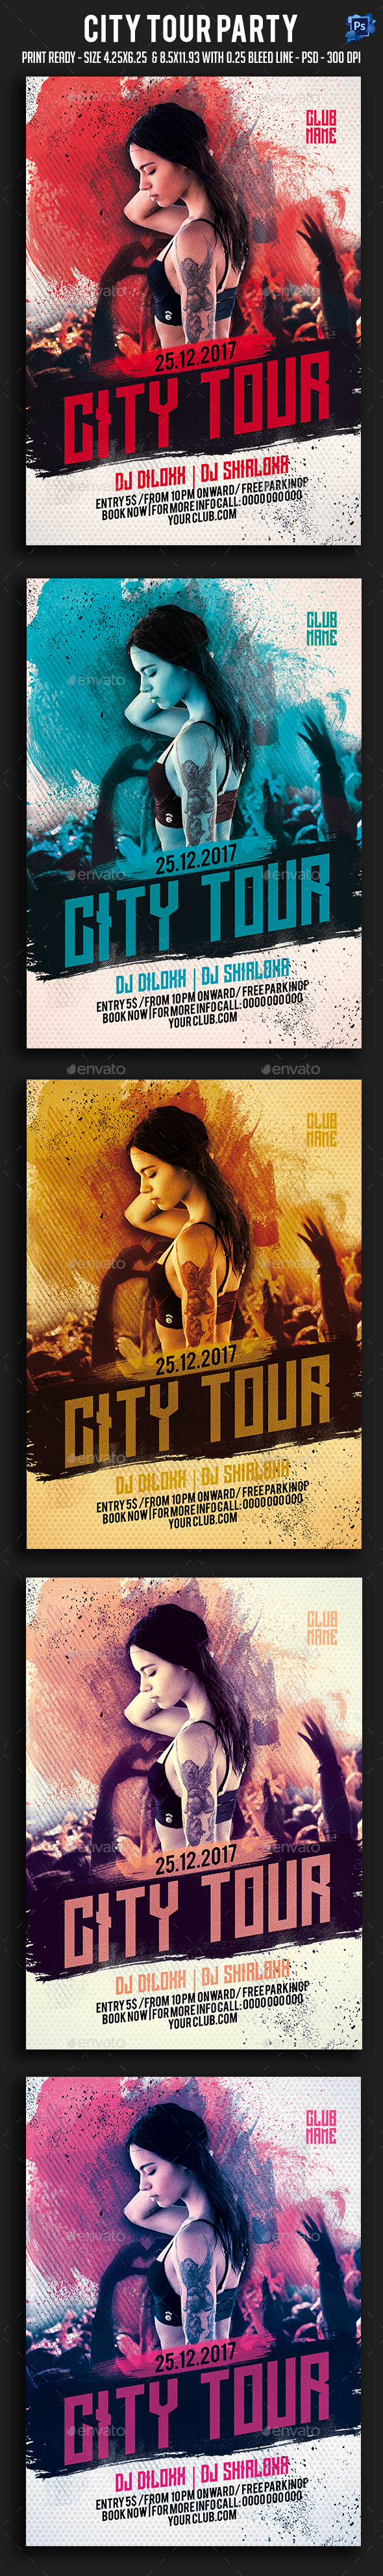 City Tour Party Flyer - Clubs & Parties Events